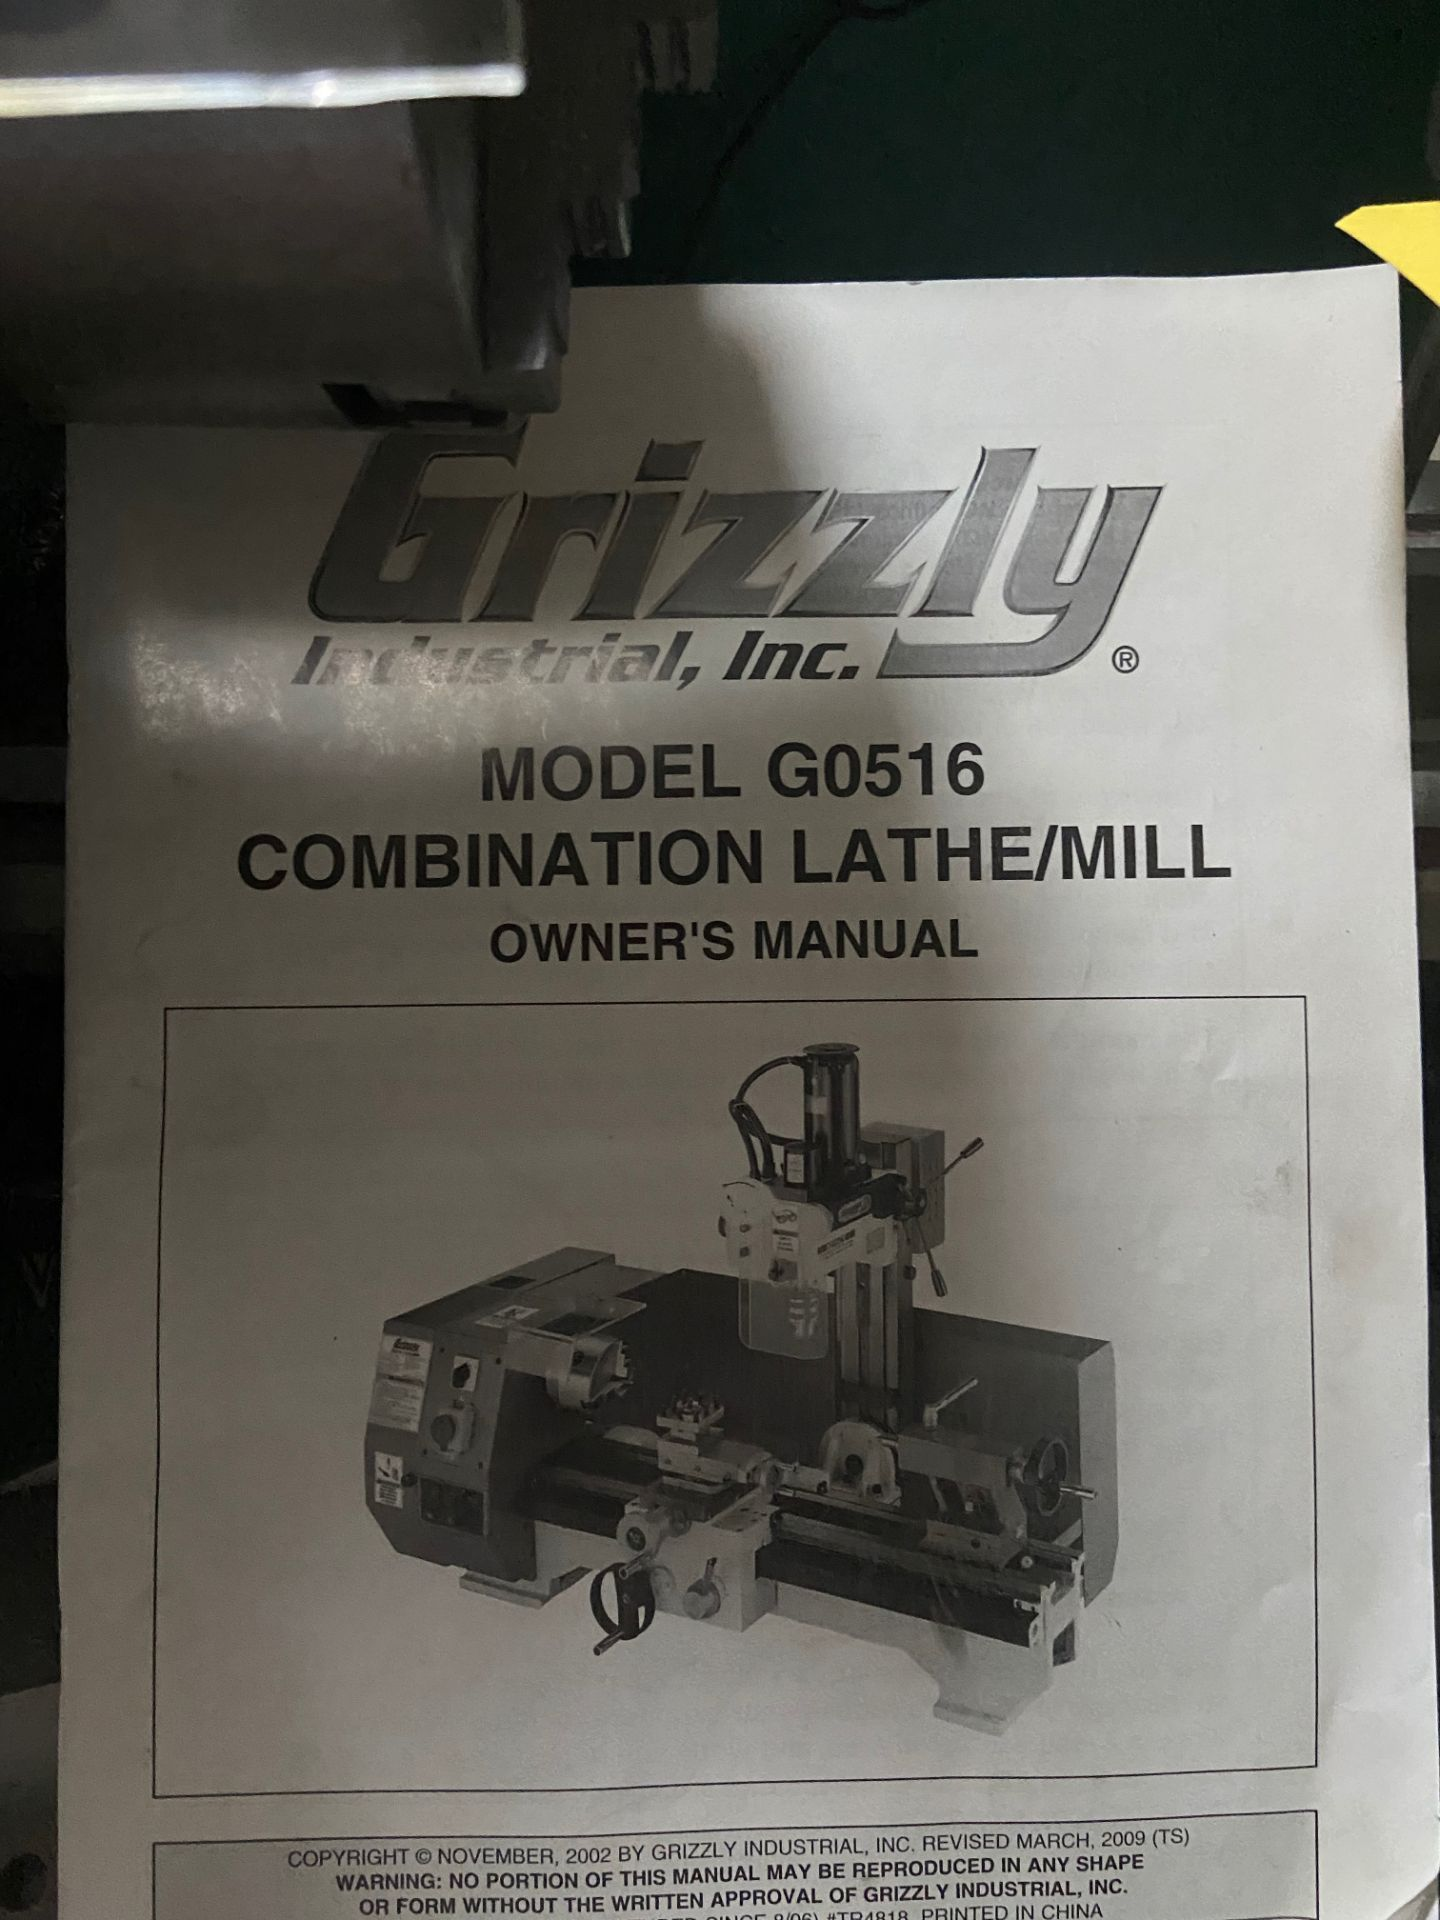 Grizzly Industrial Lathe/Mill, Model# G0516, Serial# MO120045, Lathe Motor 3/4 hp, 110V, 150-2400 - Image 8 of 12